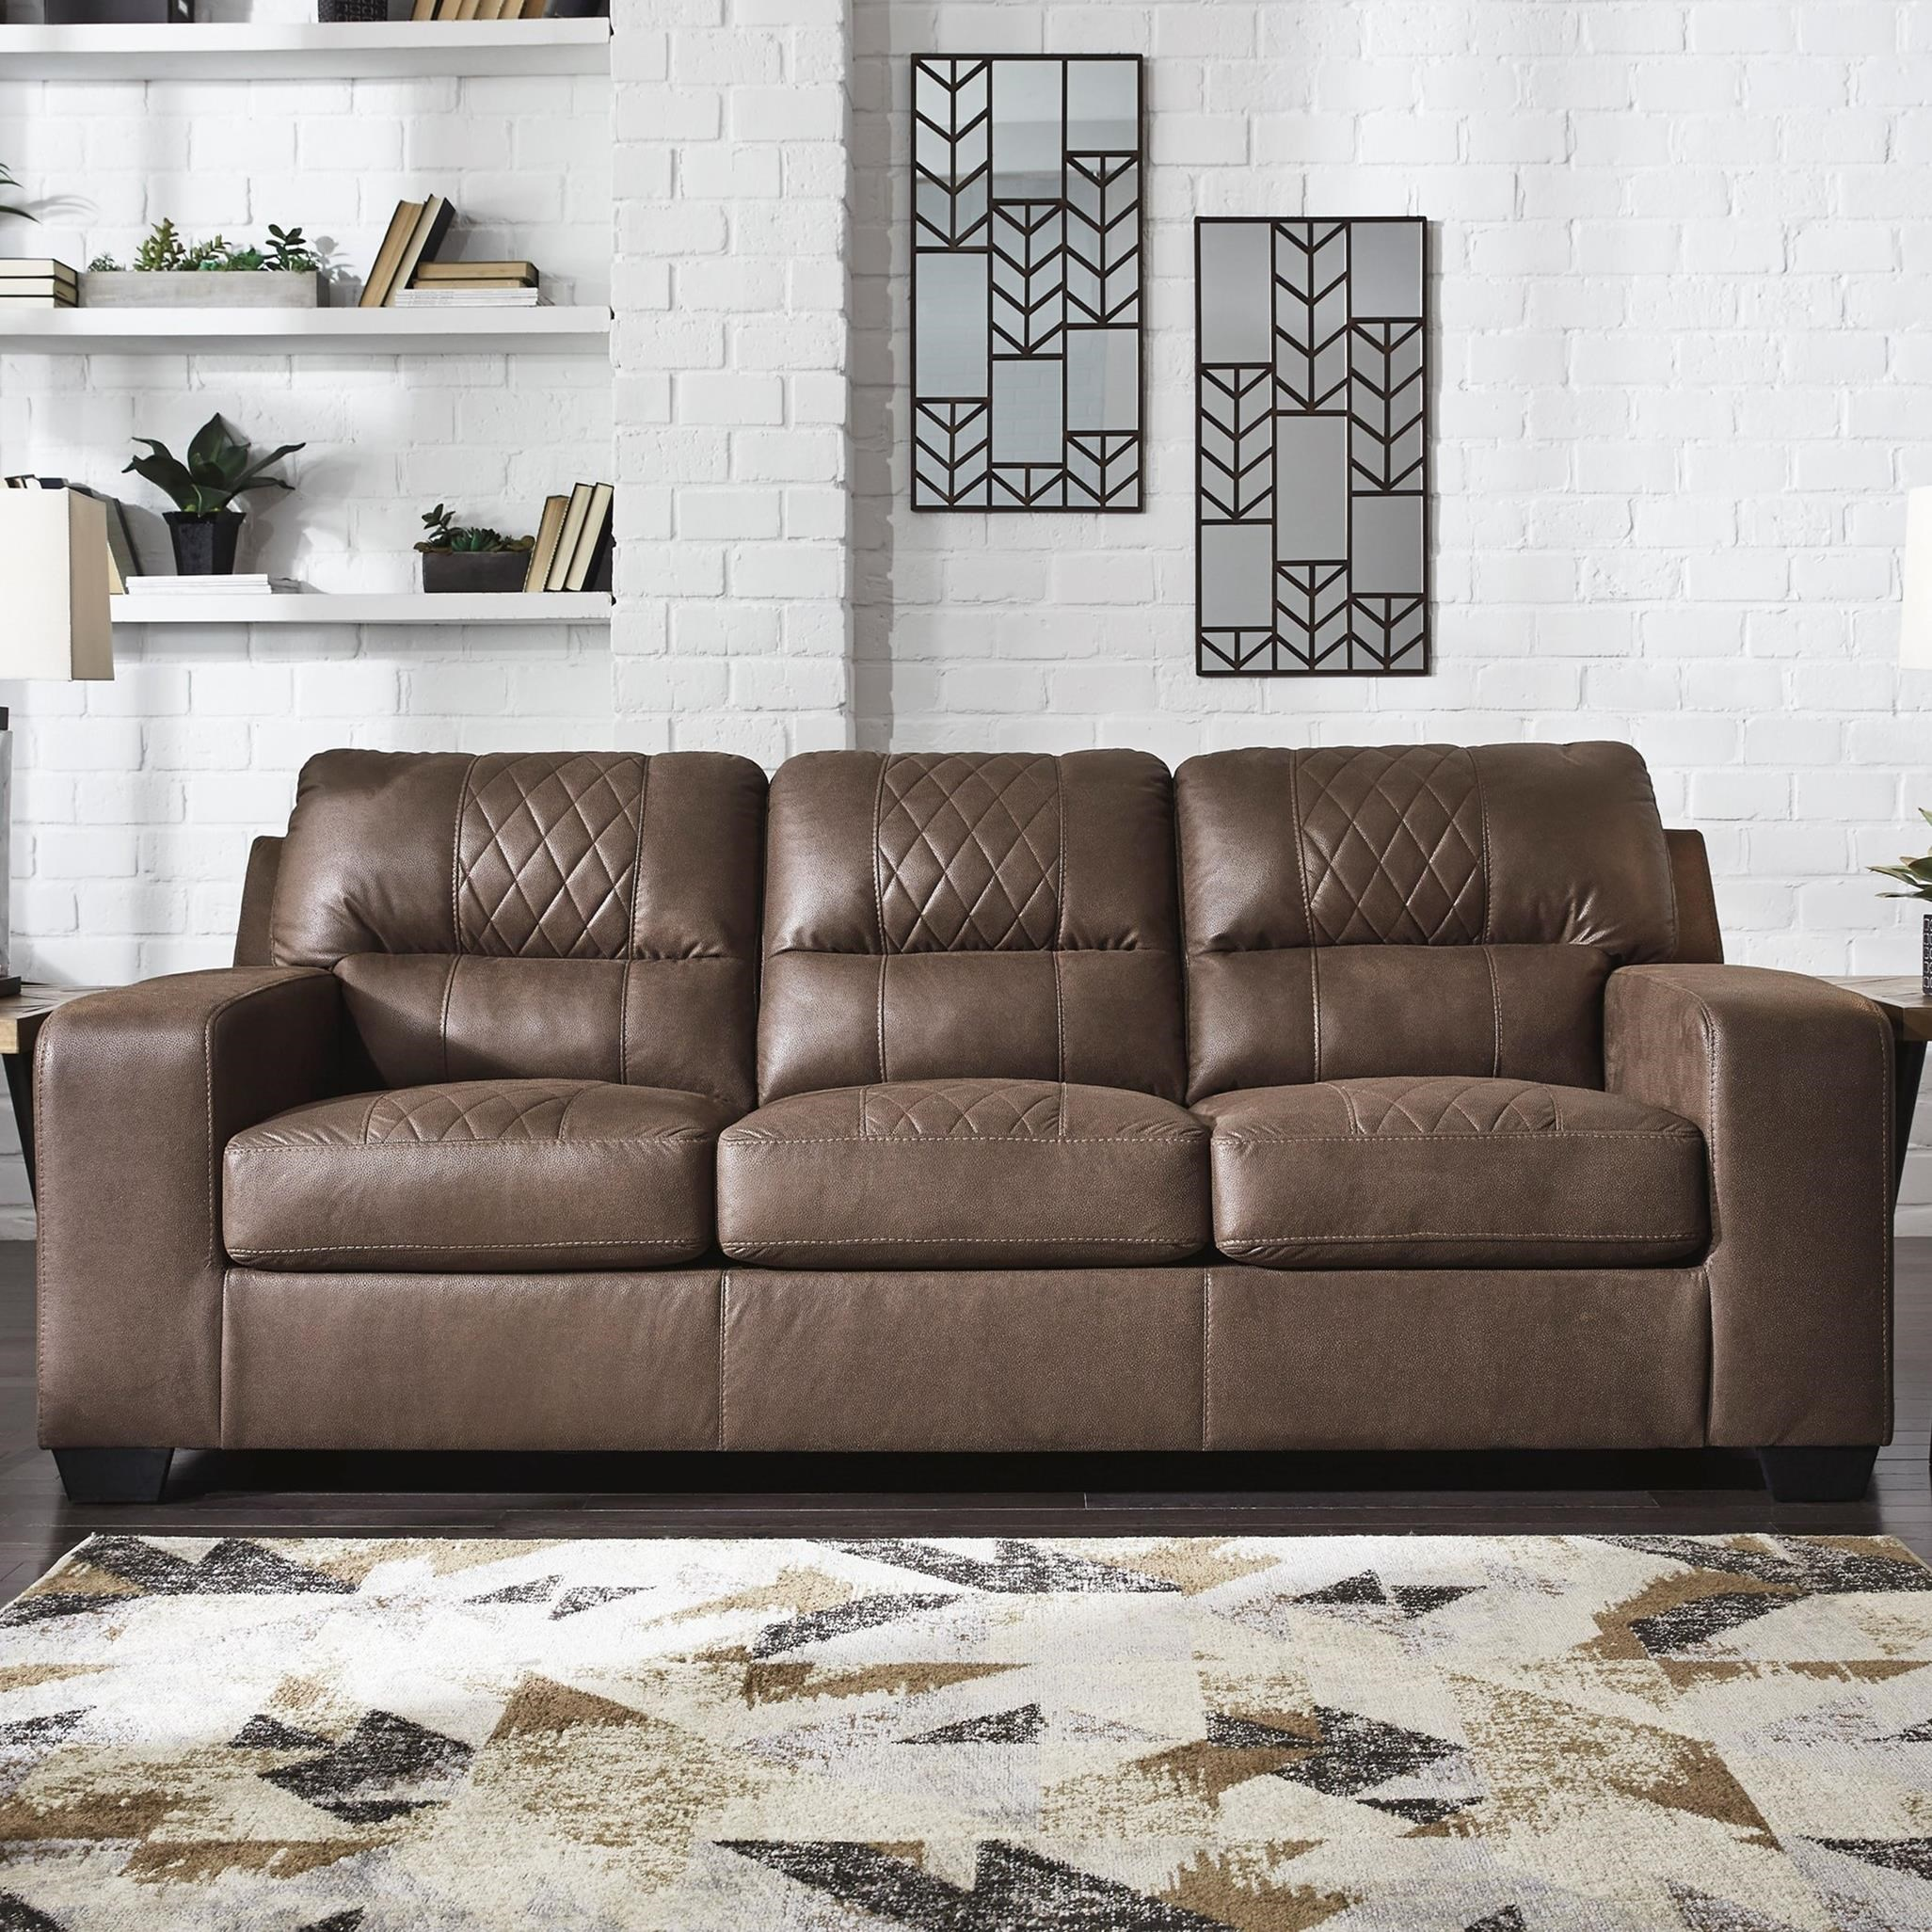 Narzole Sofa by Benchcraft at Lindy's Furniture Company